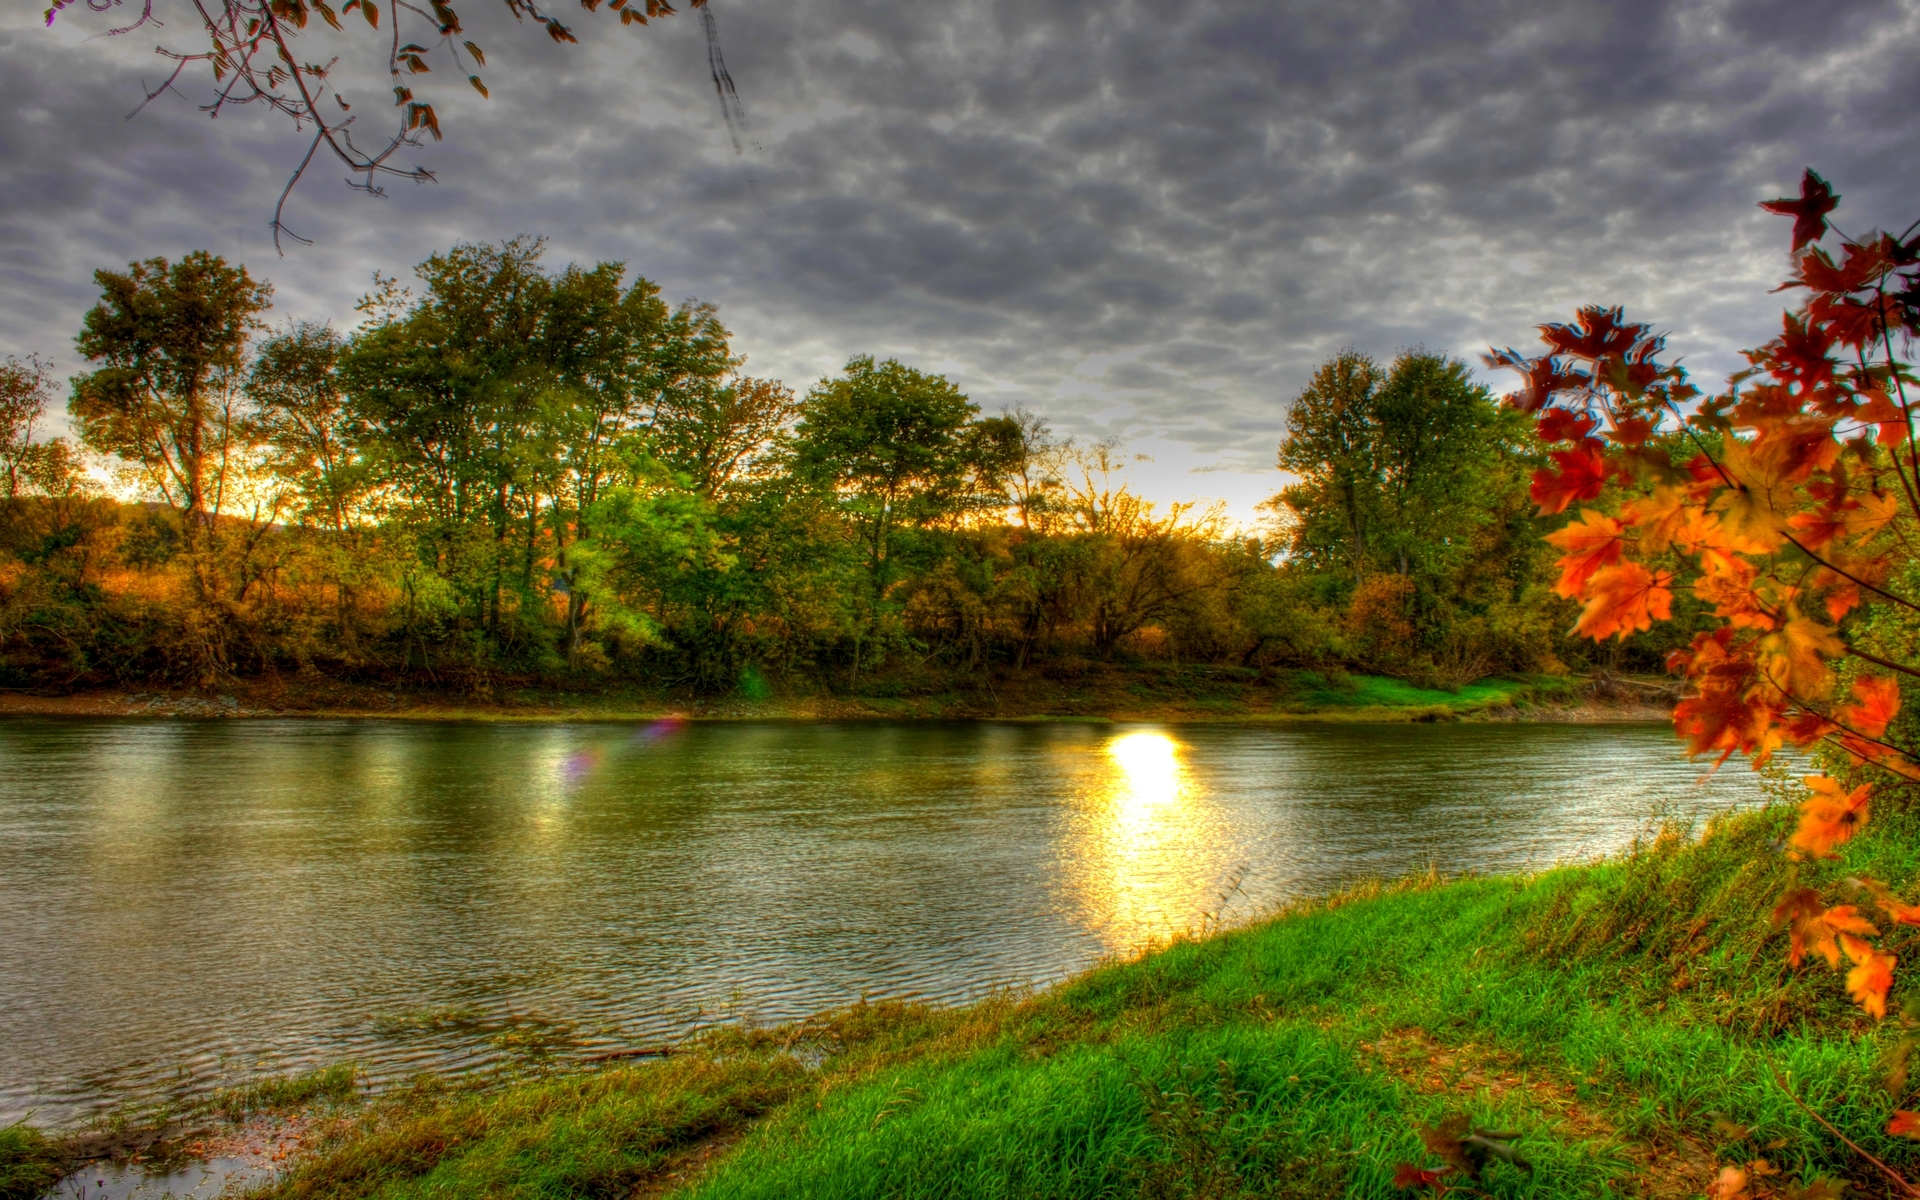 Hd Autumn Desktop Wallpaper Autumn River Hd Wallpaper Pixelstalk Net